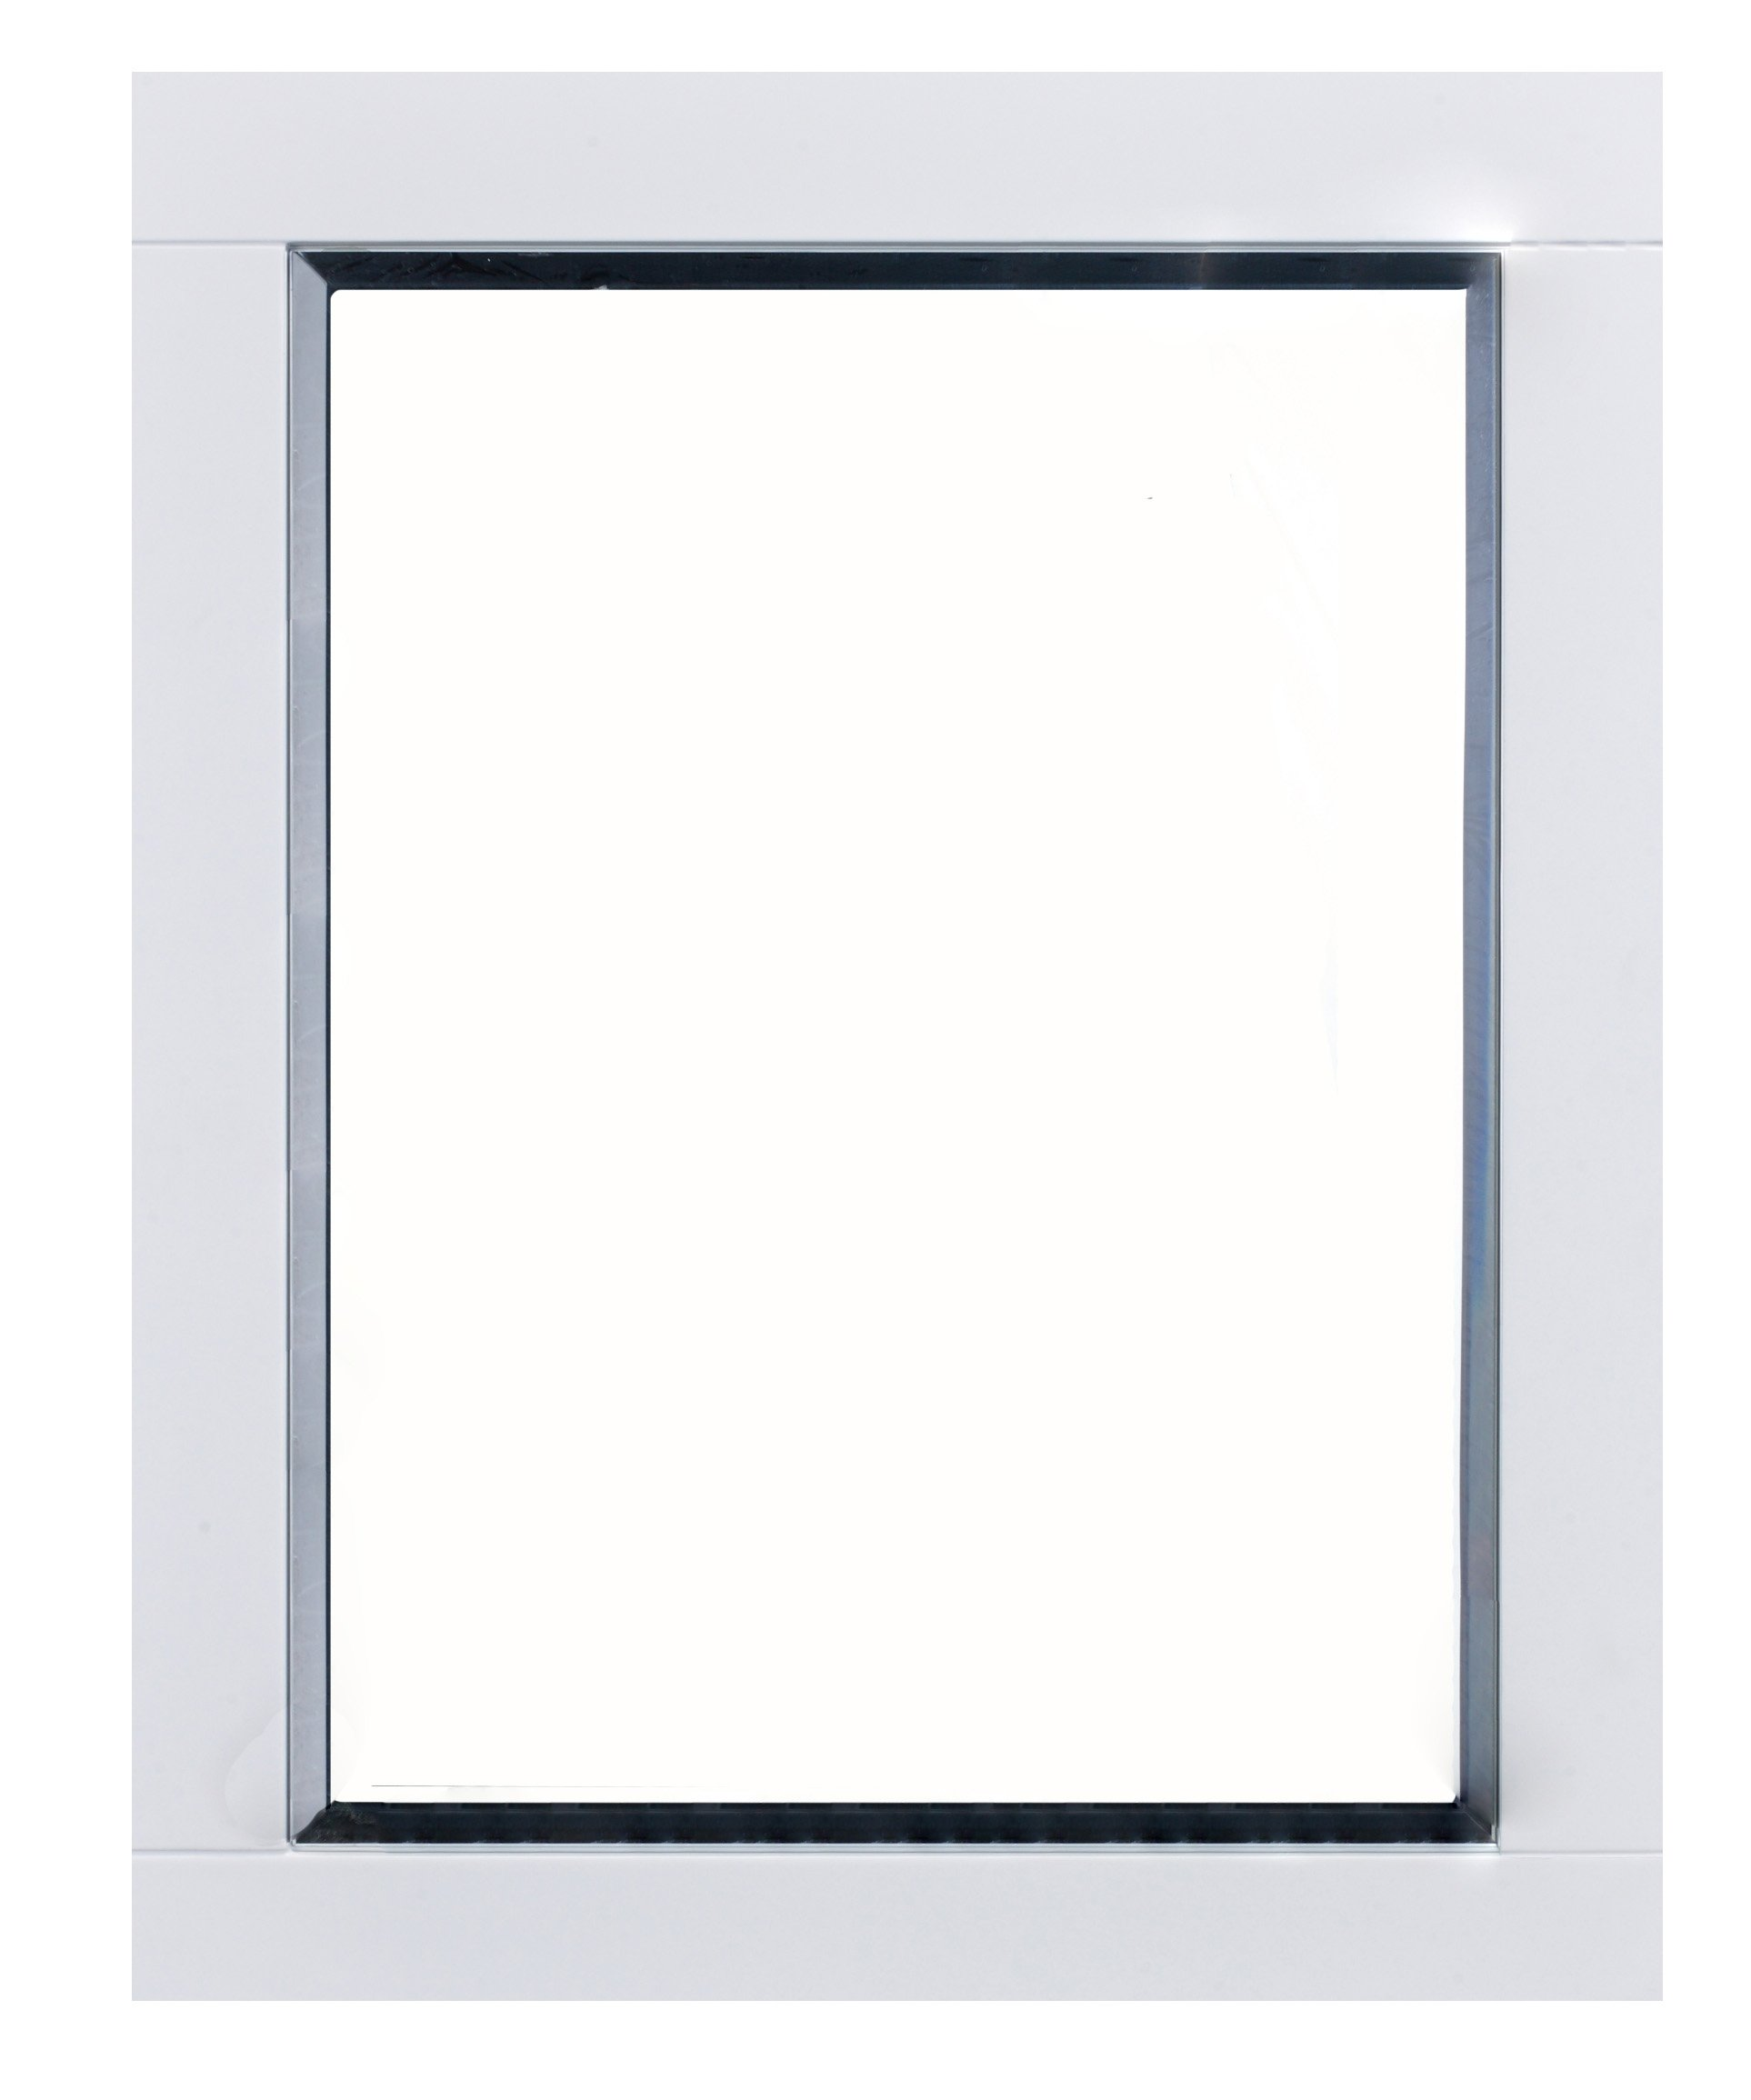 Eviva Evmr412-24x30-Wh Aberdeen 24'' White Framed Bathroom Wall Mirror Combination